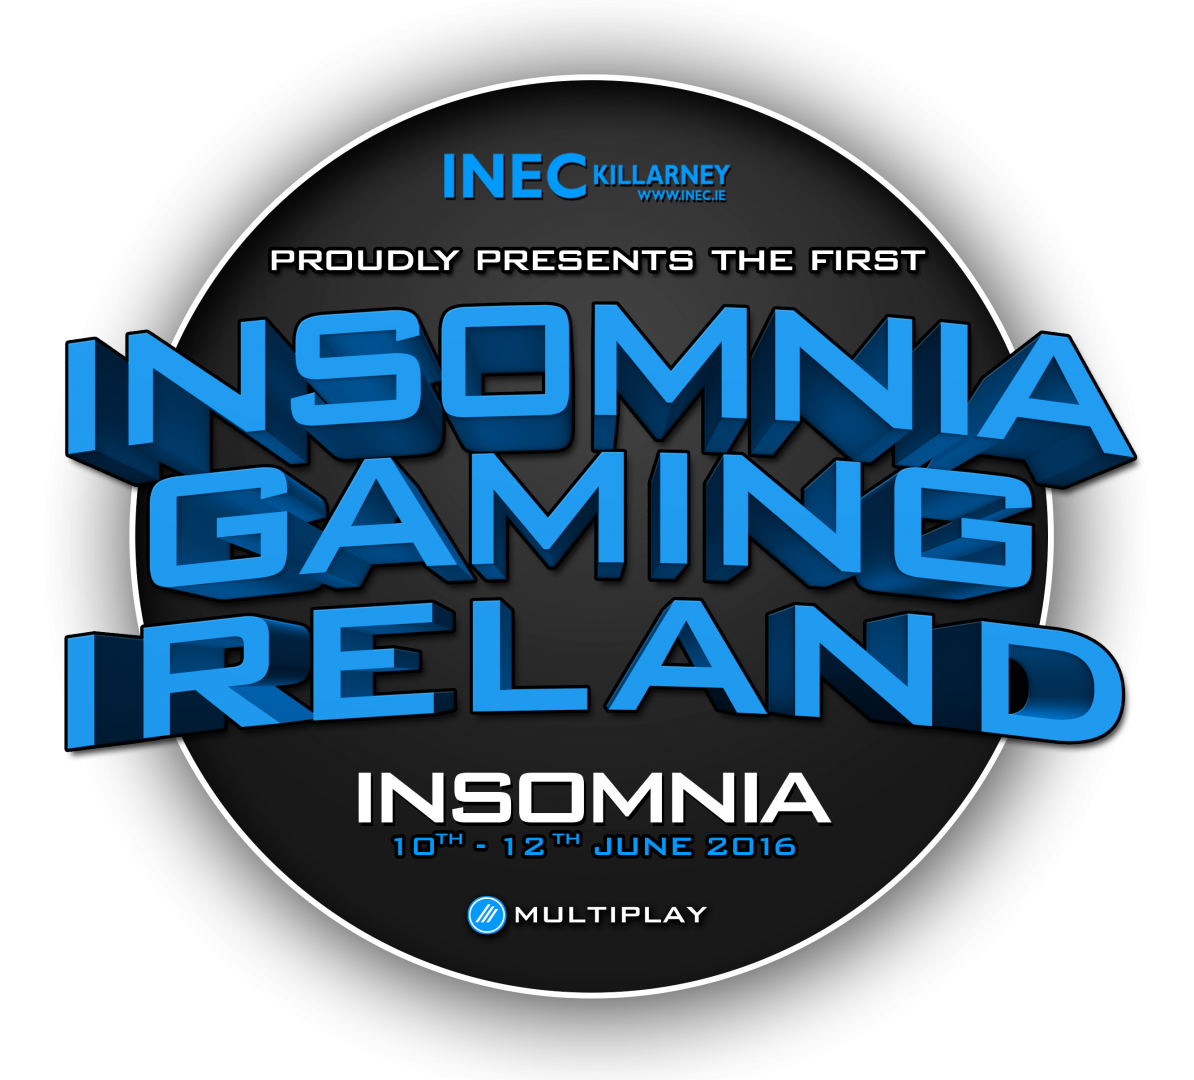 GameStop to Join Insomnia Gaming Ireland